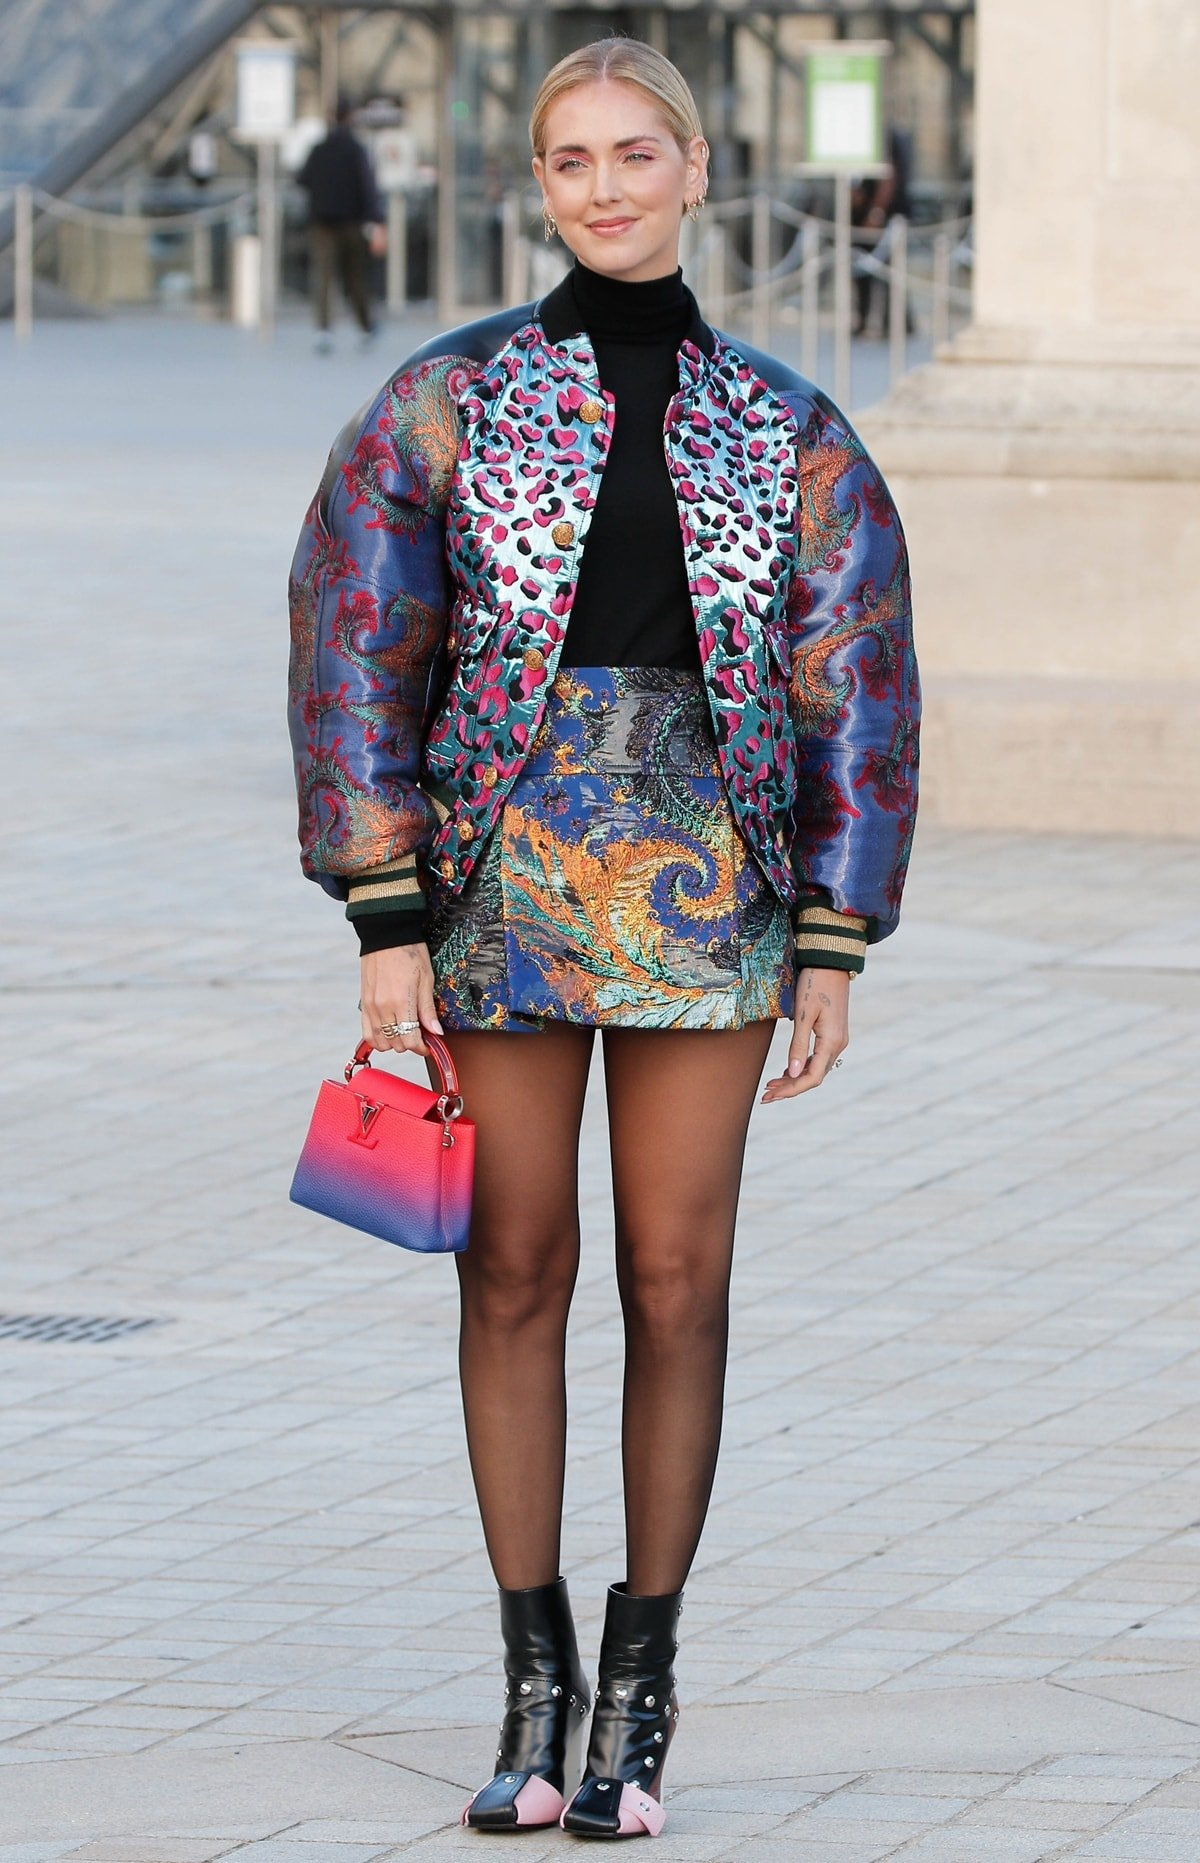 Chiara Ferragni arrives in Patti wedge ankle boots at the Louis Vuitton show